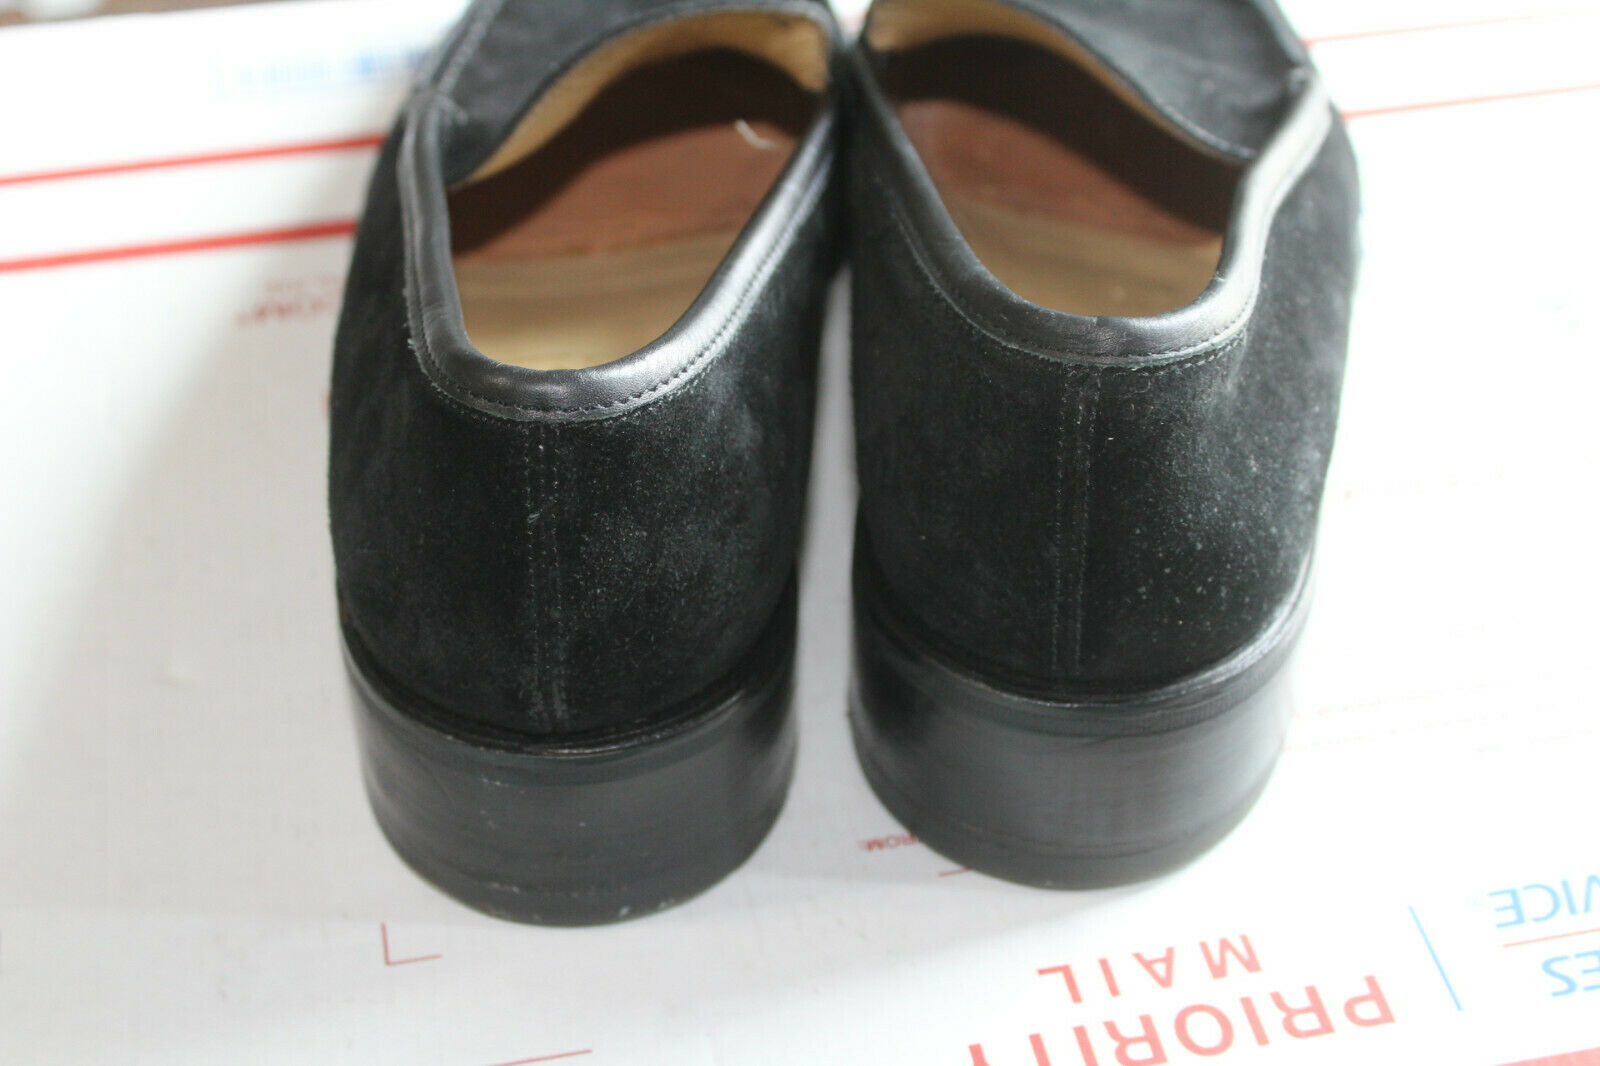 GUCCI MEN'S BLACK SUEDE LEATHER  LOAFERS SIZE  10 - image 4